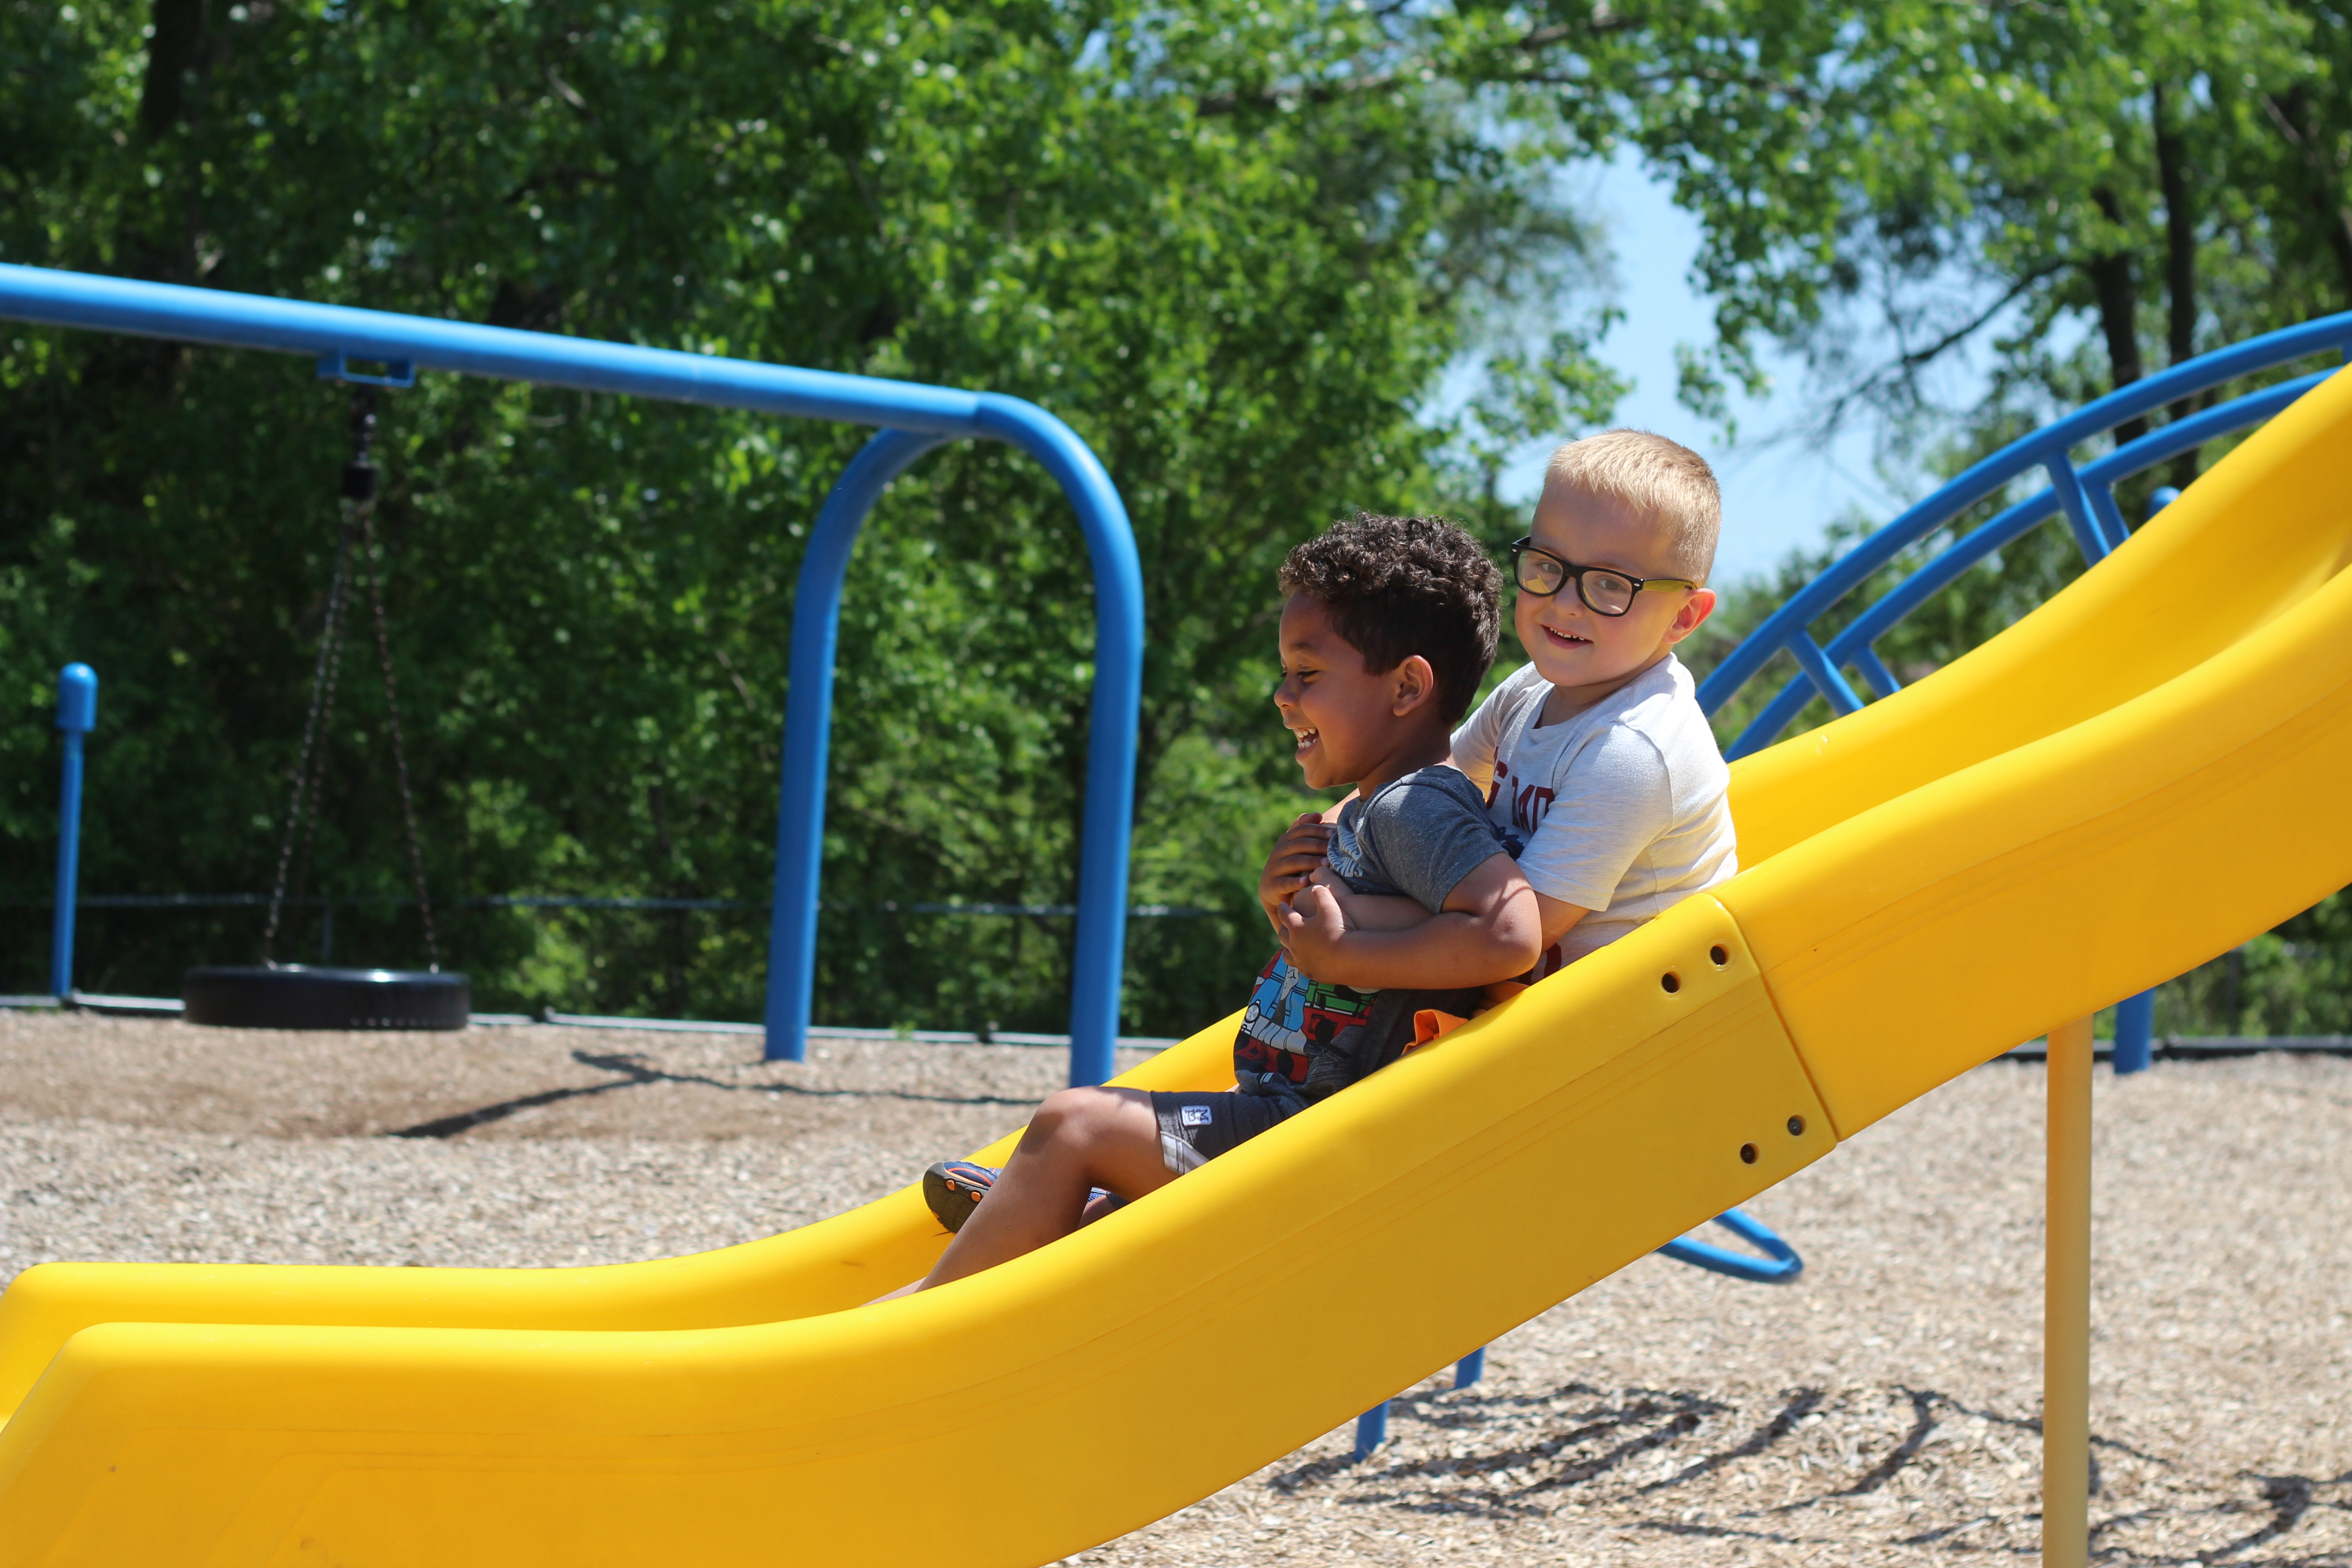 Two boys go down the slide